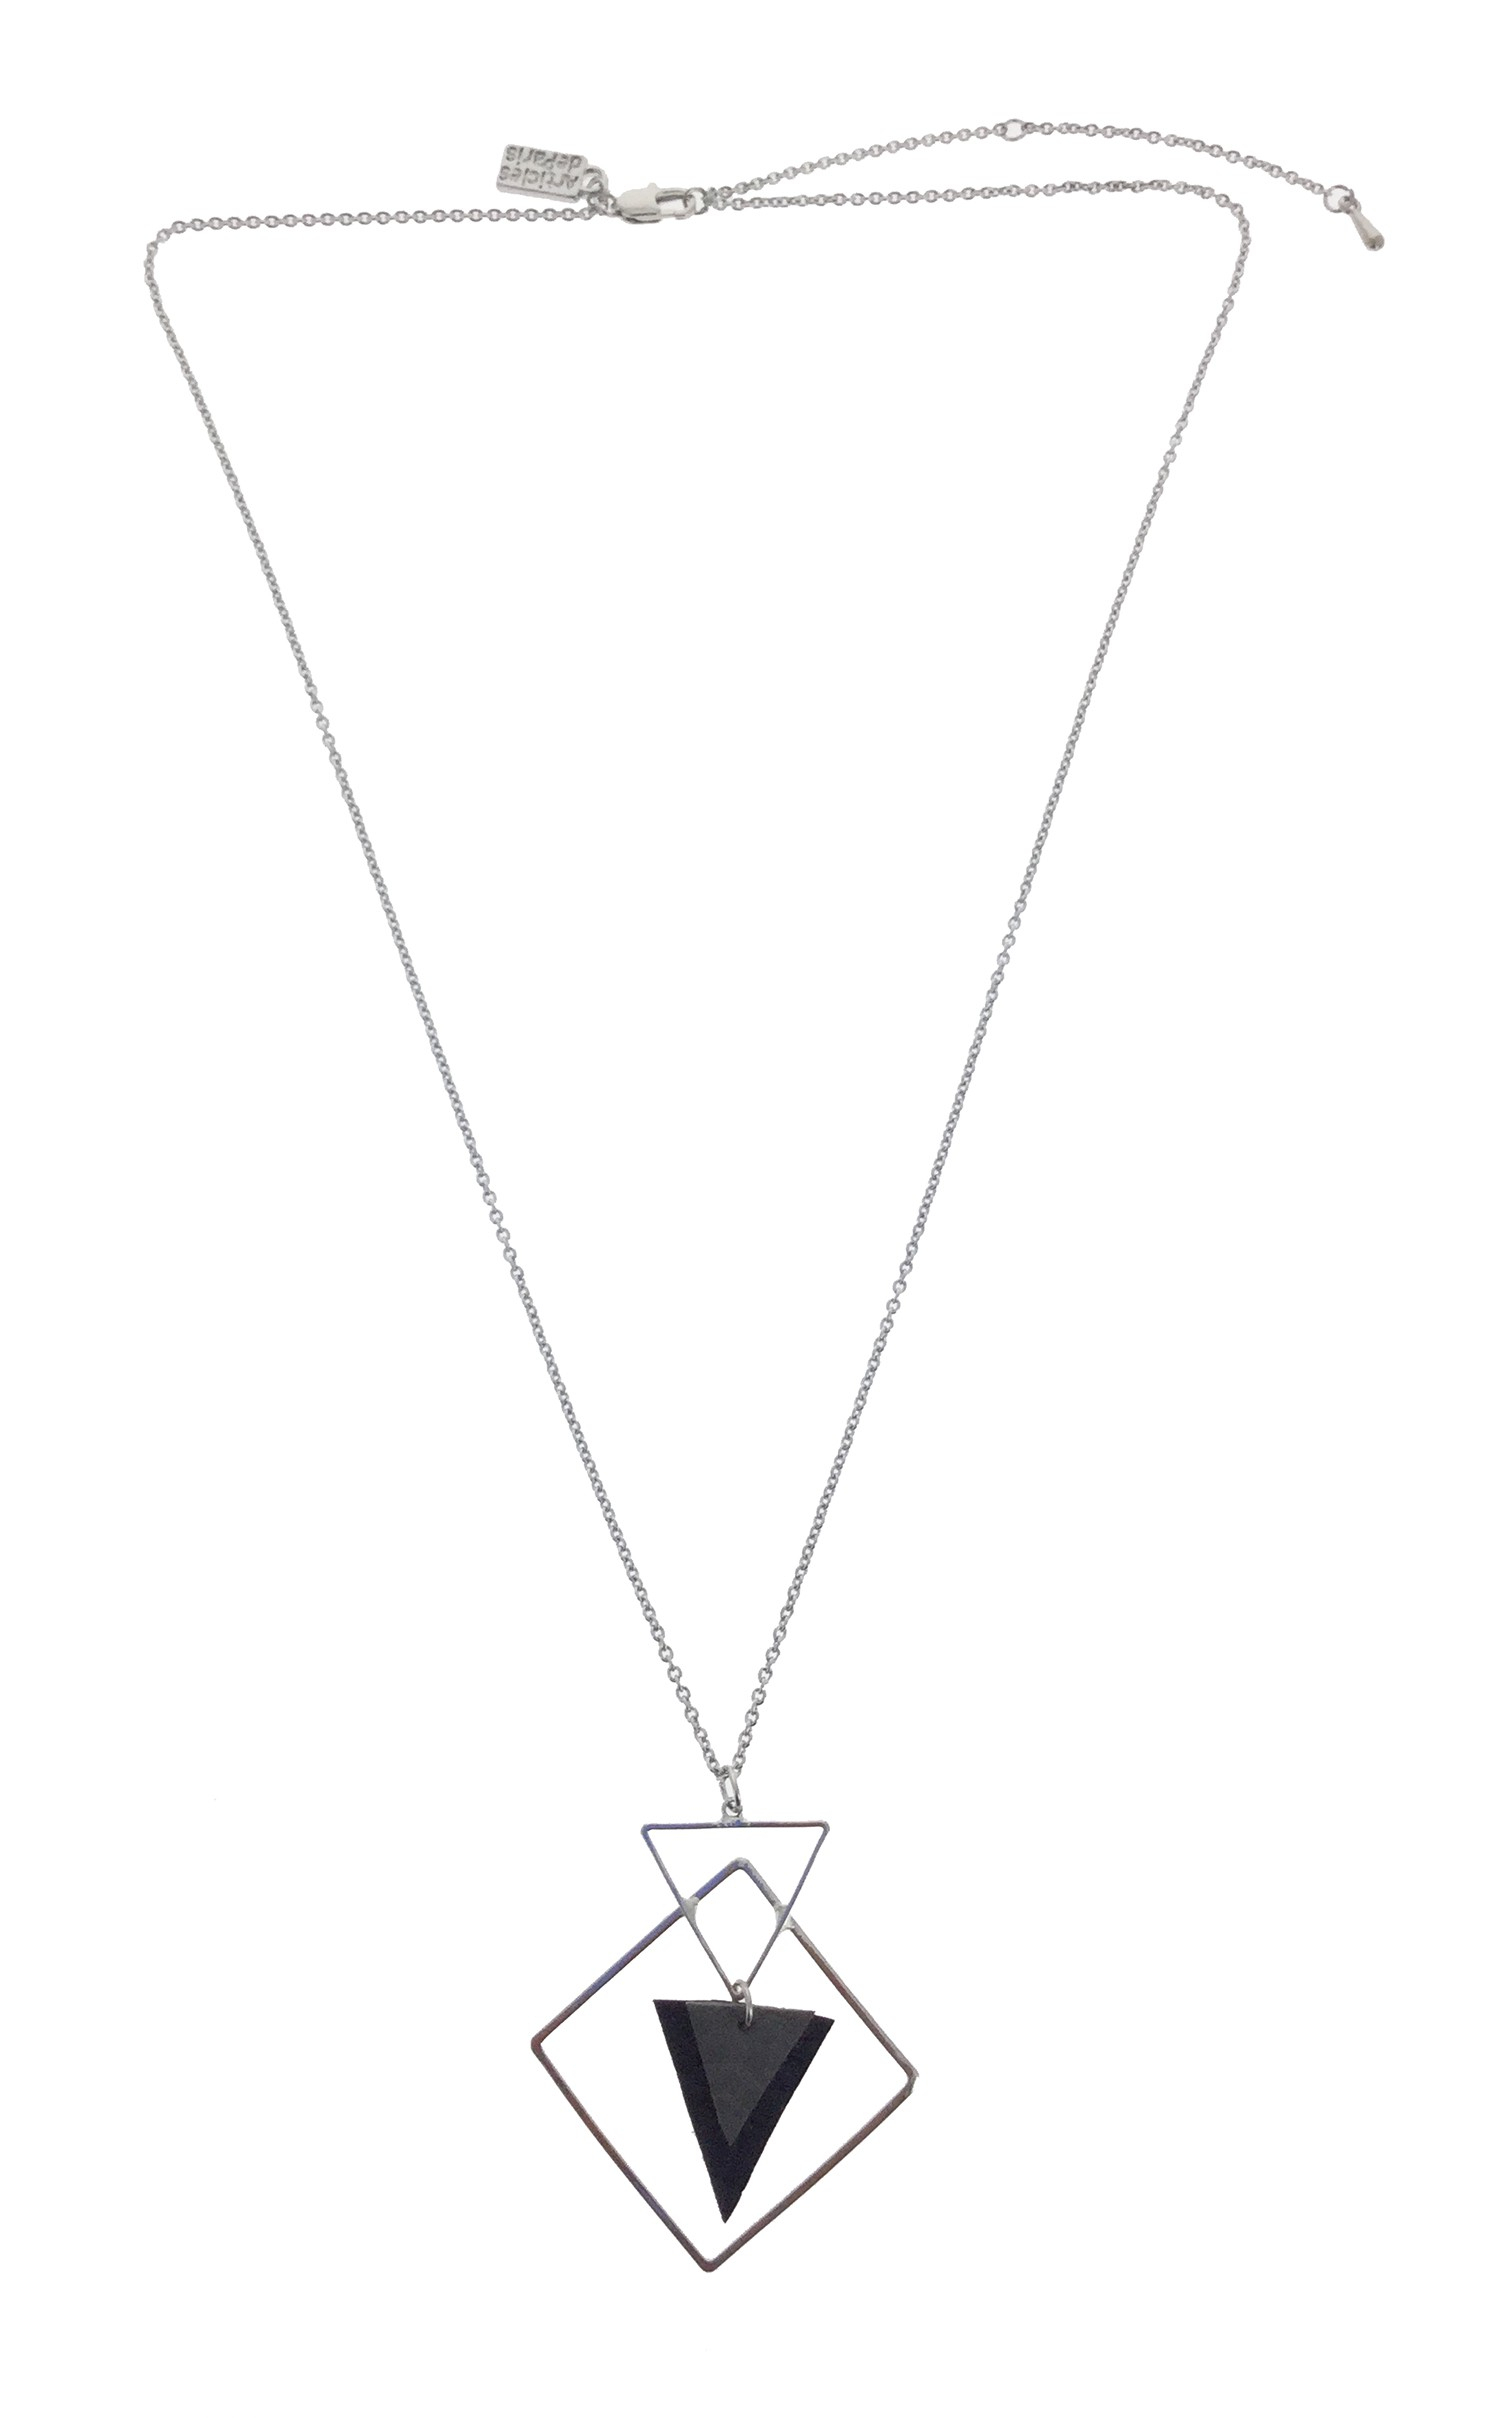 Necklace – Geometric Shapes With Fabric Triangle Within (View 18 of 25)